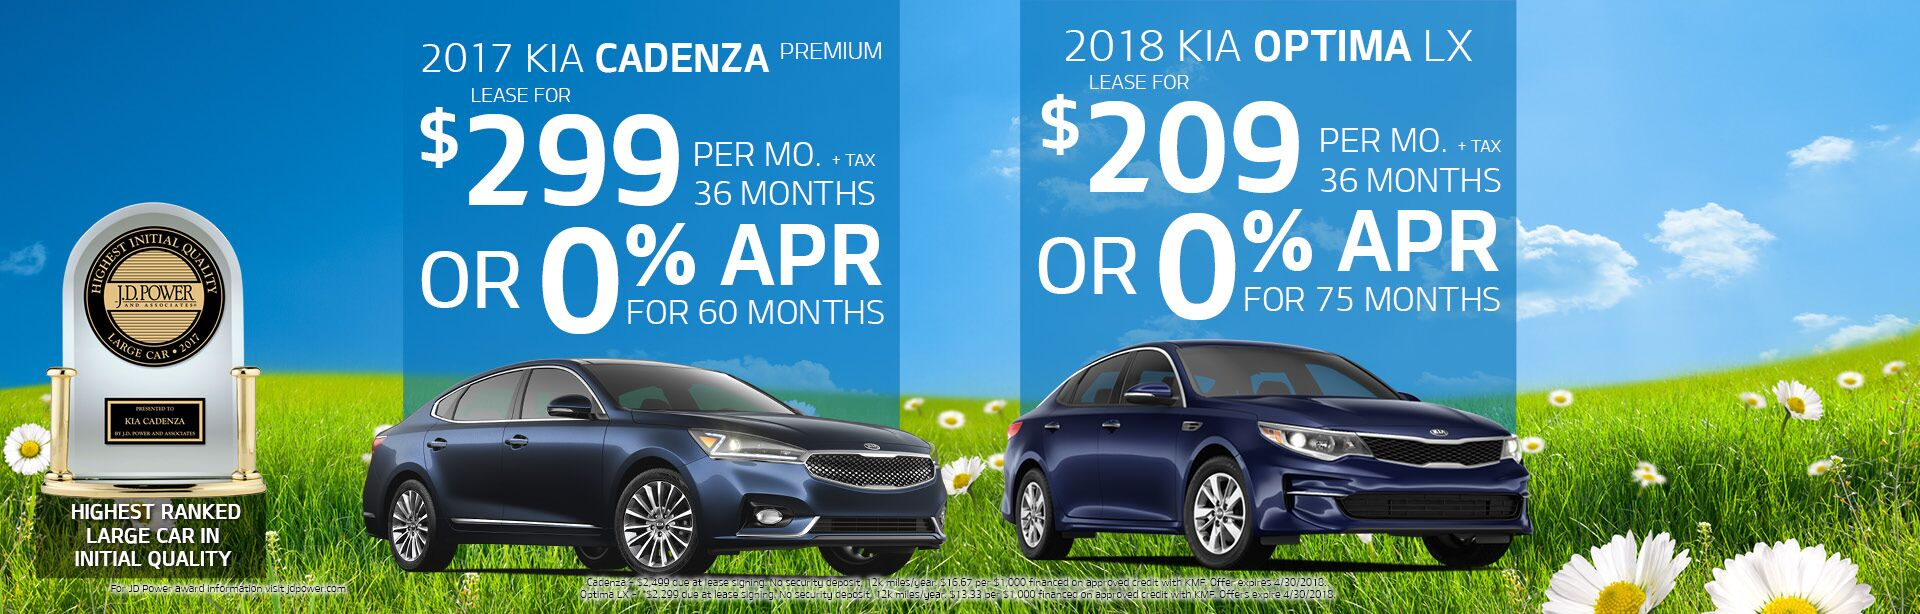 Cadenza & Optima Offers